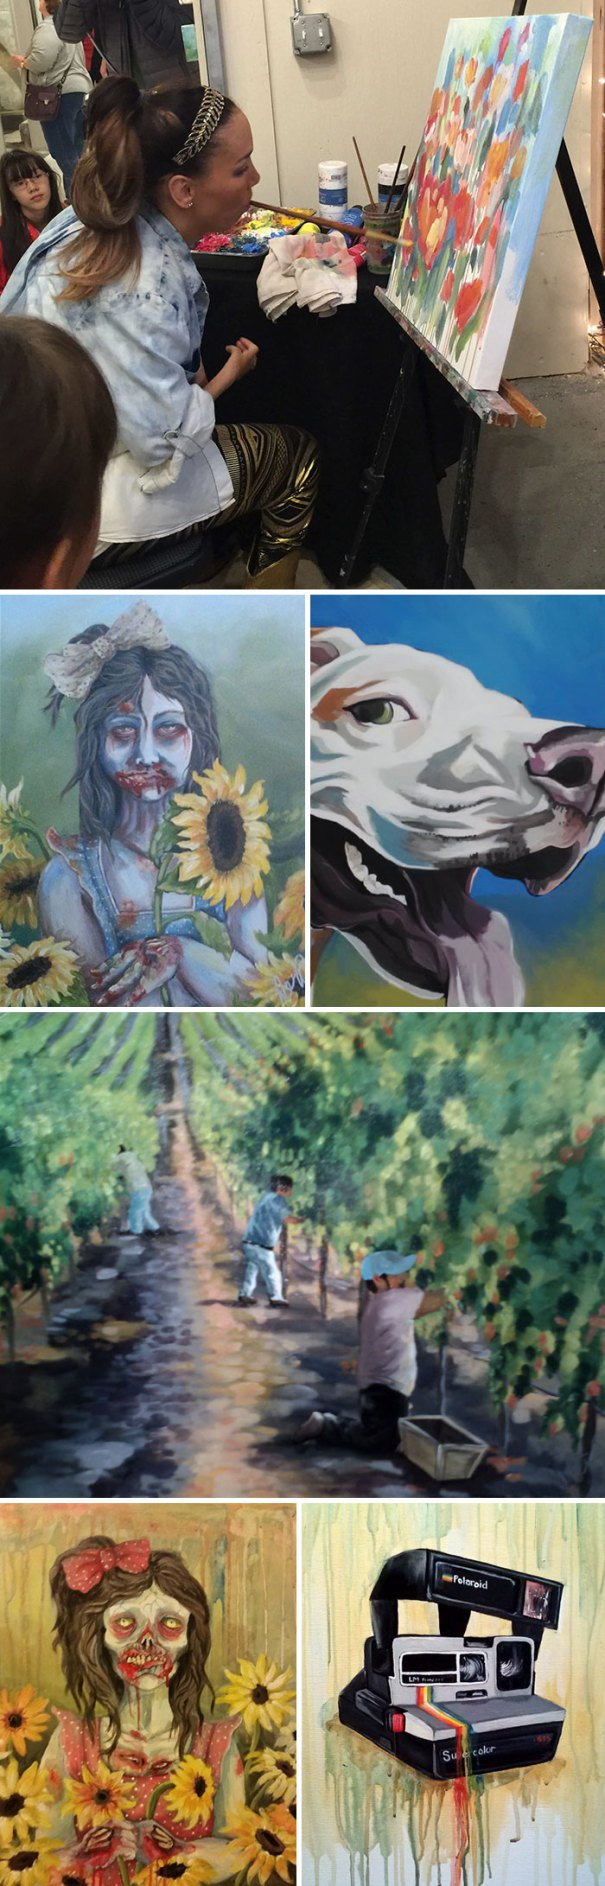 My Sister Alana Was Born Without The Use Of Her Hands. She Paints Using Her Mouth And Feet. I Wanted To Share Some Of Her Artwork